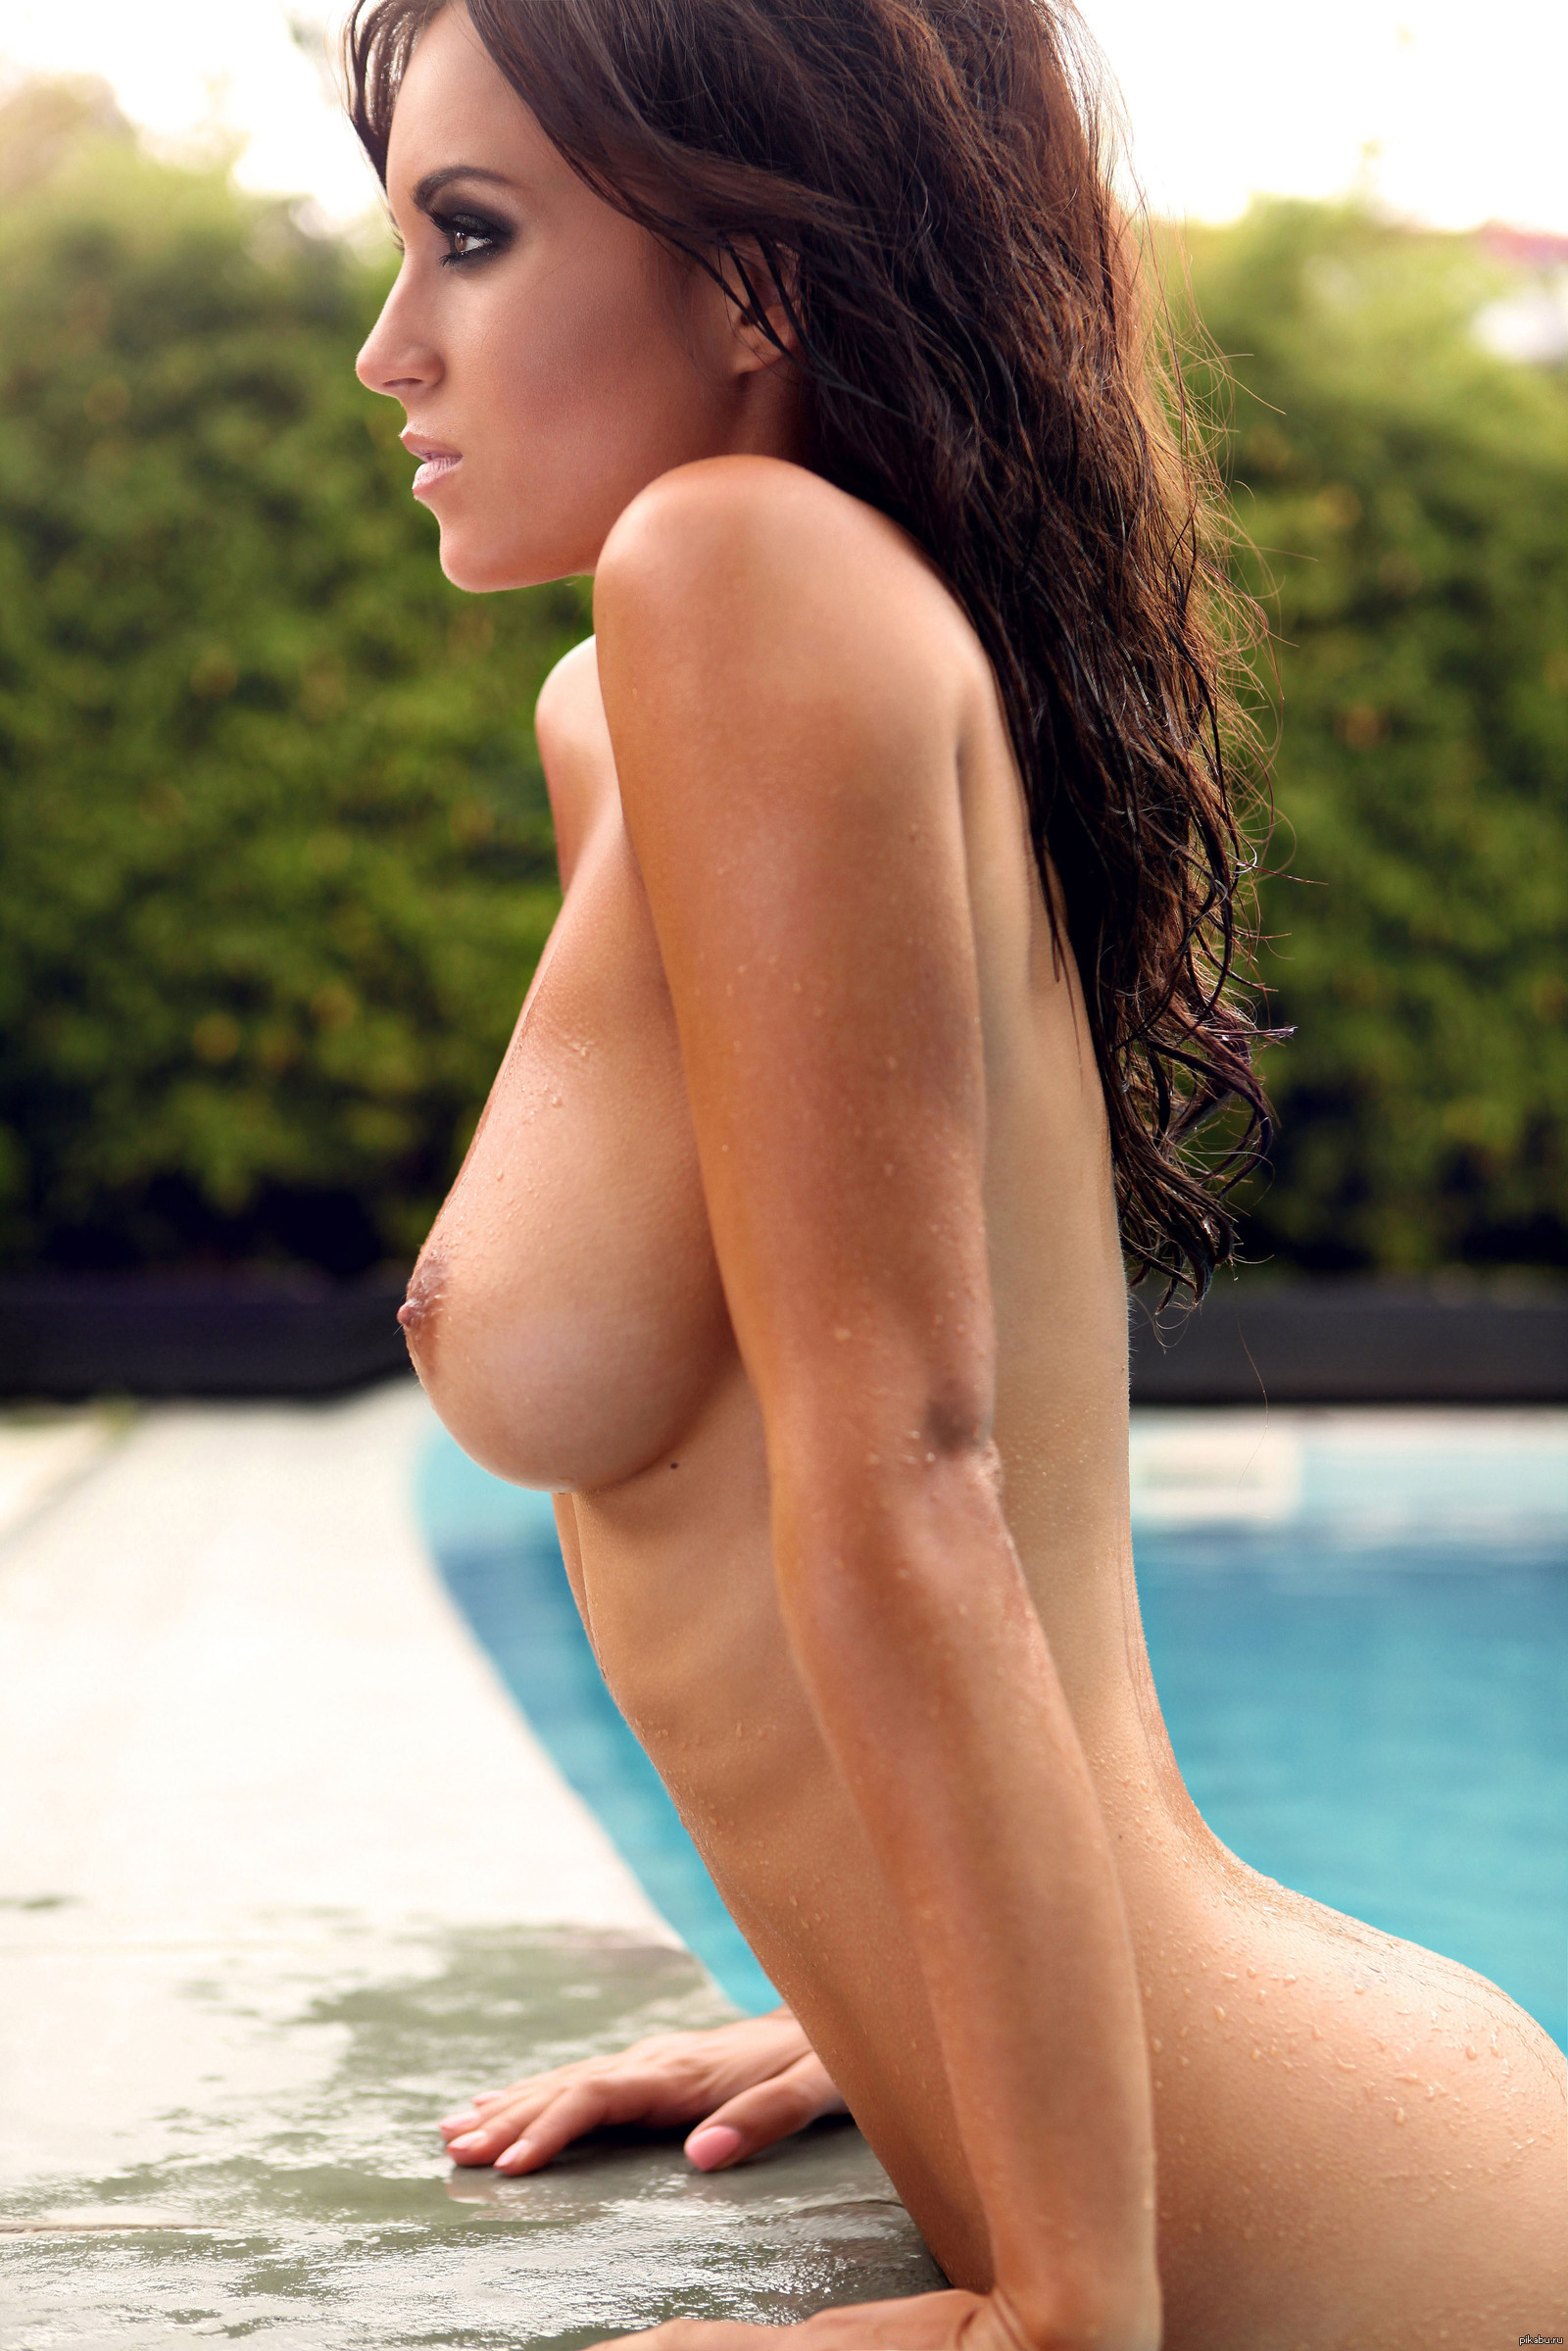 Hot sexy topless girl